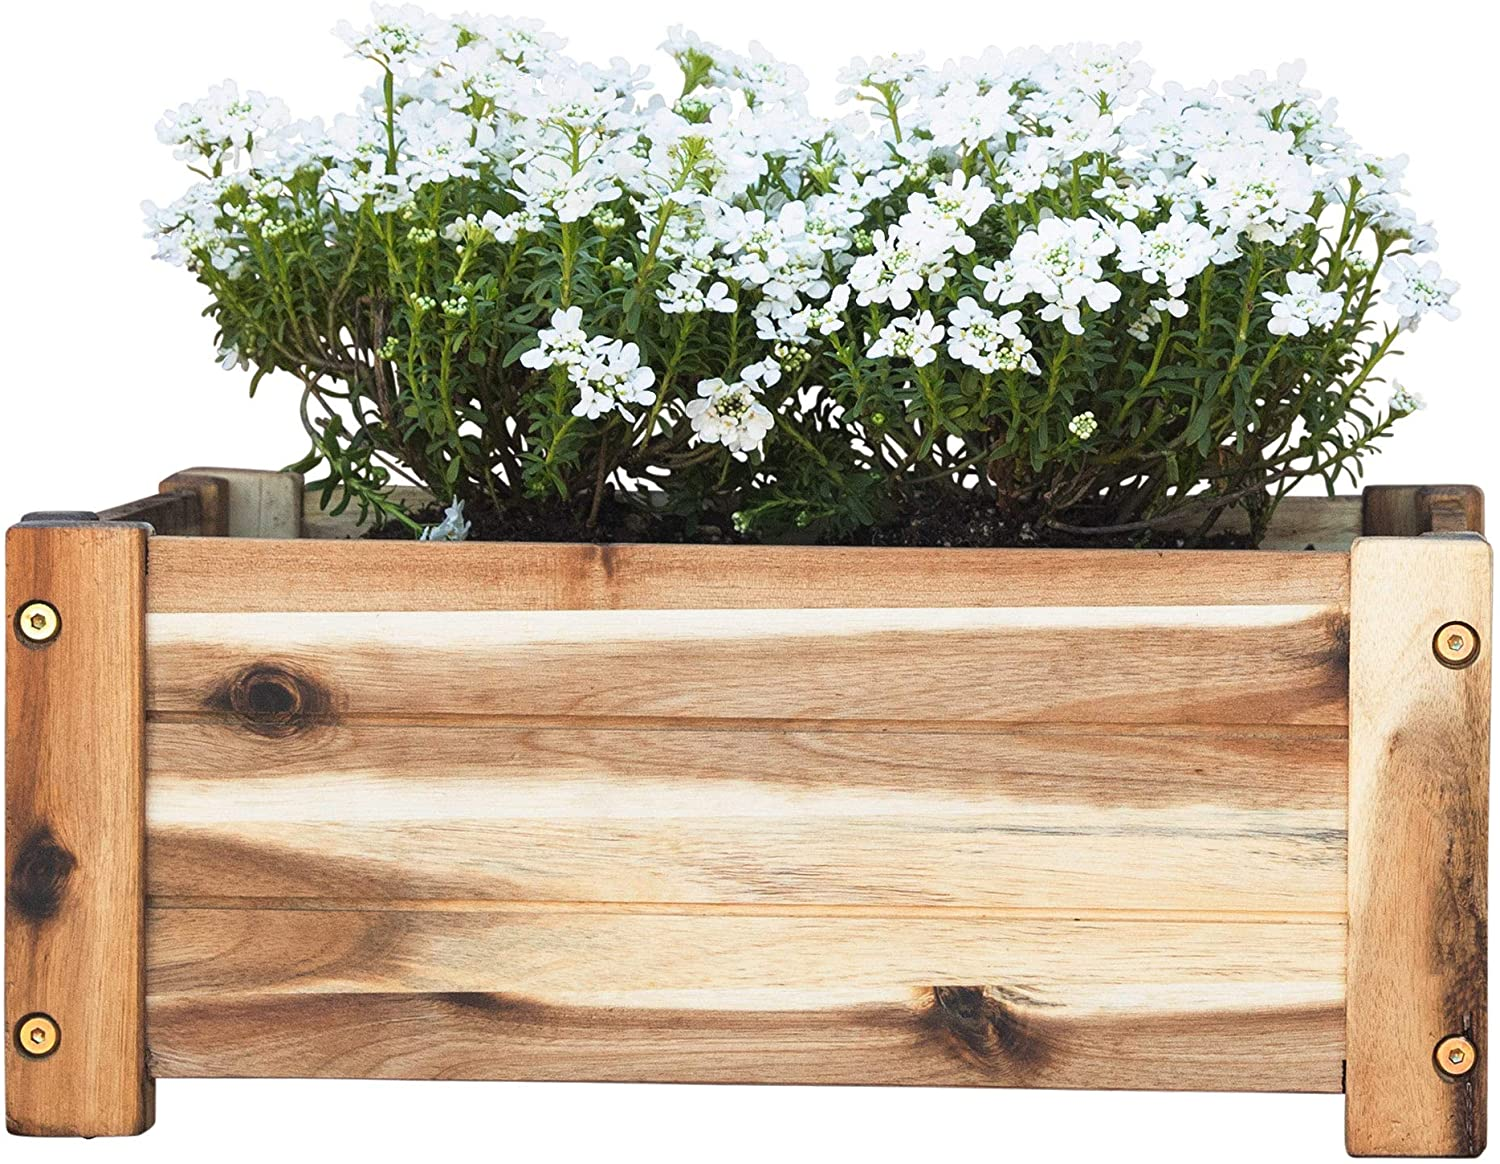 Acacia Wood Garden Planters Outdoor Herb Box Plants Flowers Pot Display Flowers